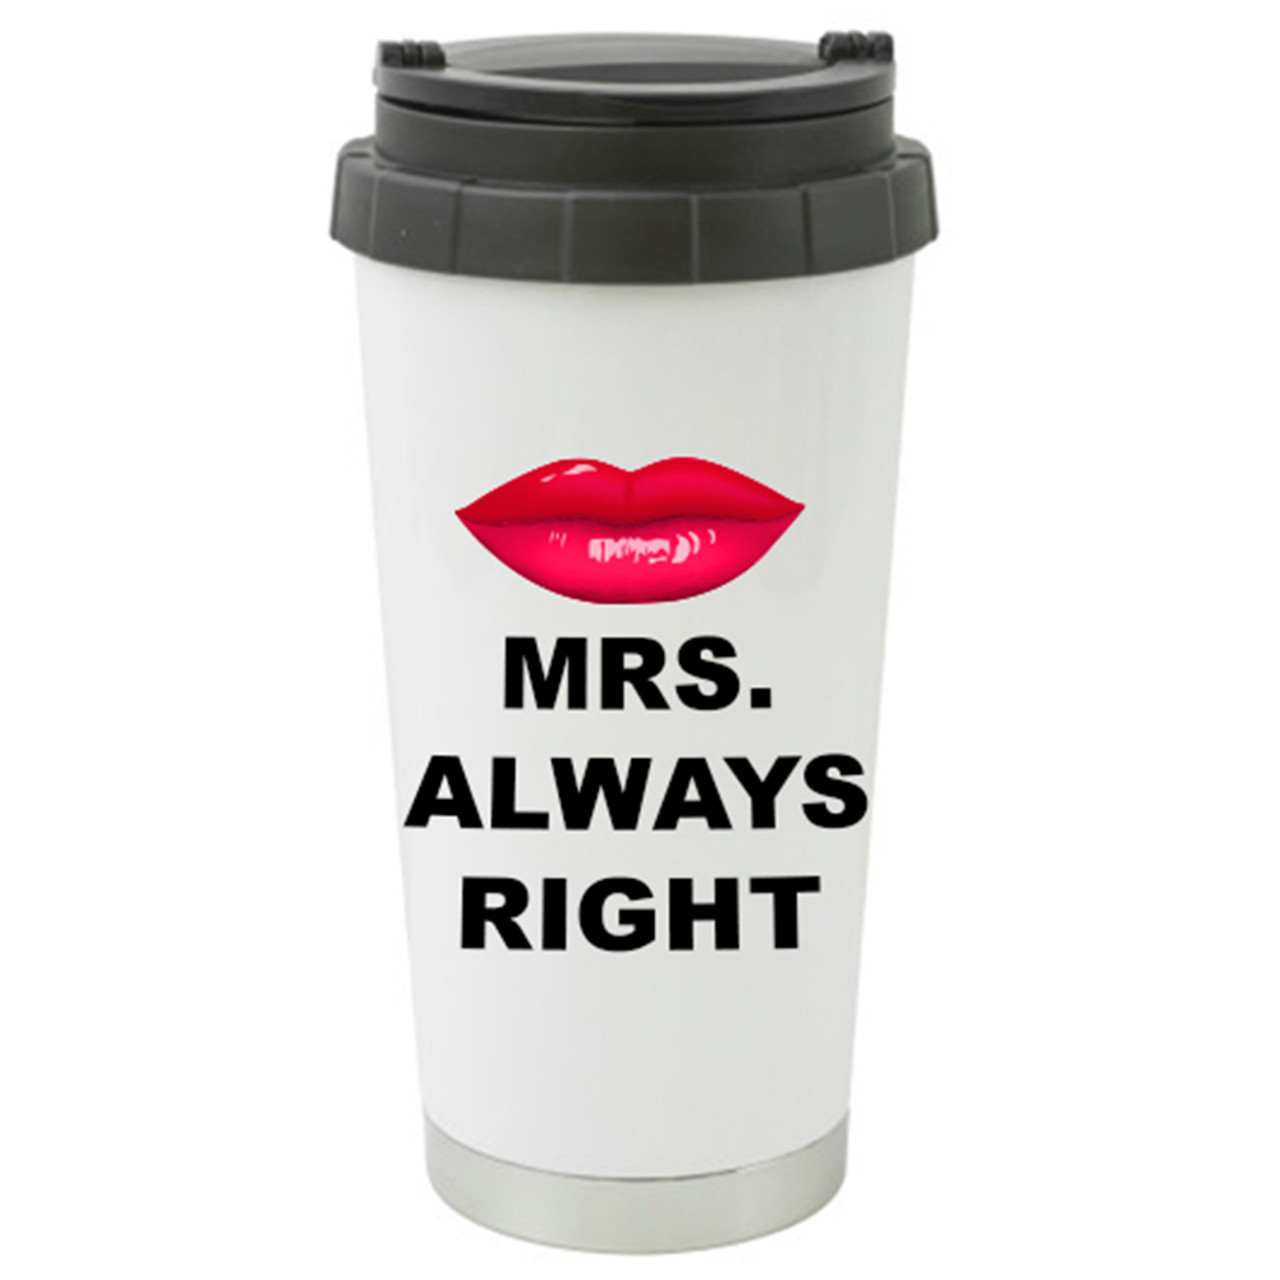 A Add Name Always Travel Other Right Or Mug Mrs To The Side Mr EeDWH2Yb9I